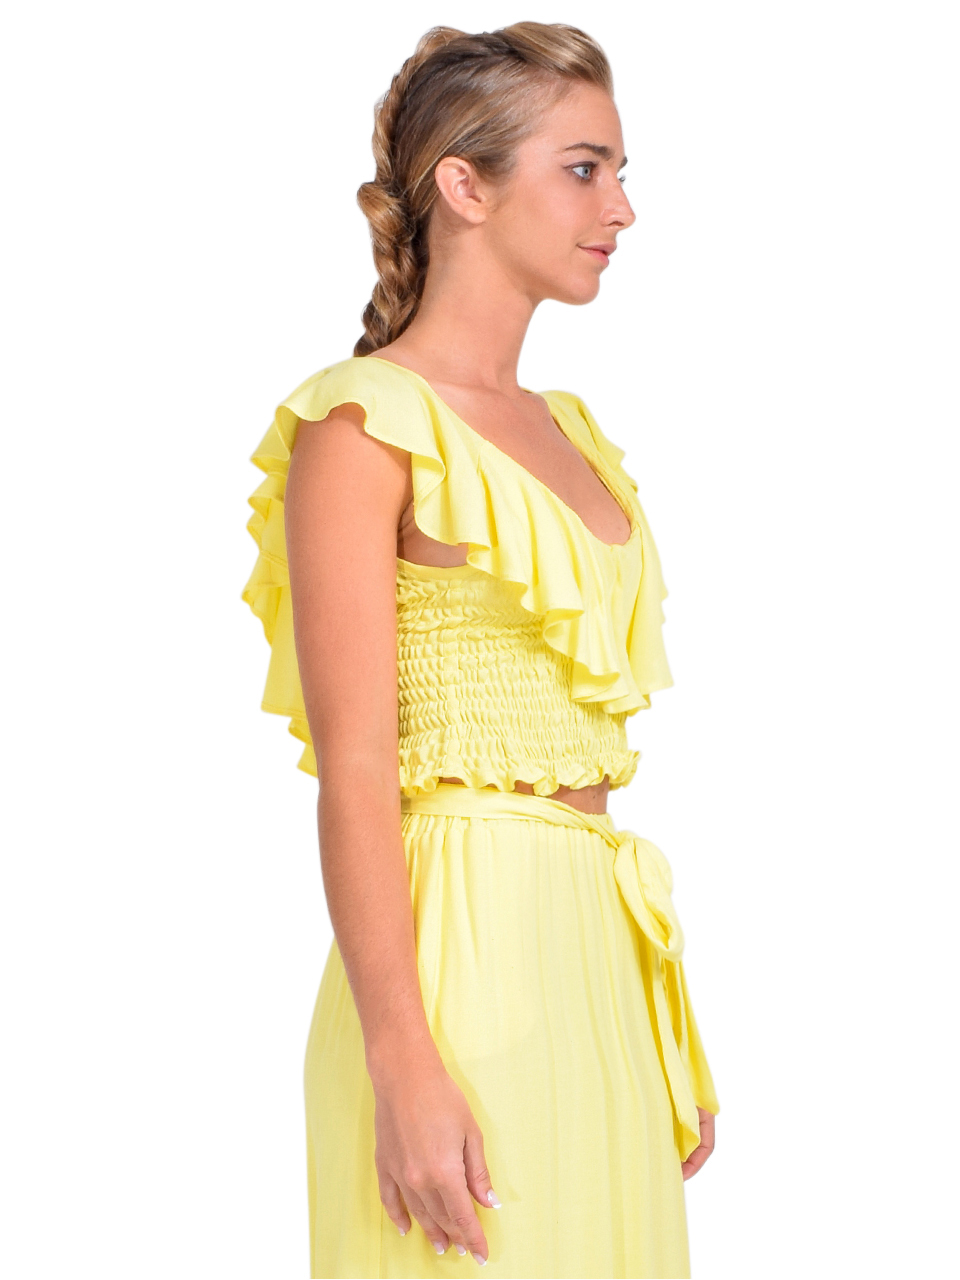 KASIA Sifnos Crop Top in Yellow Side View 2